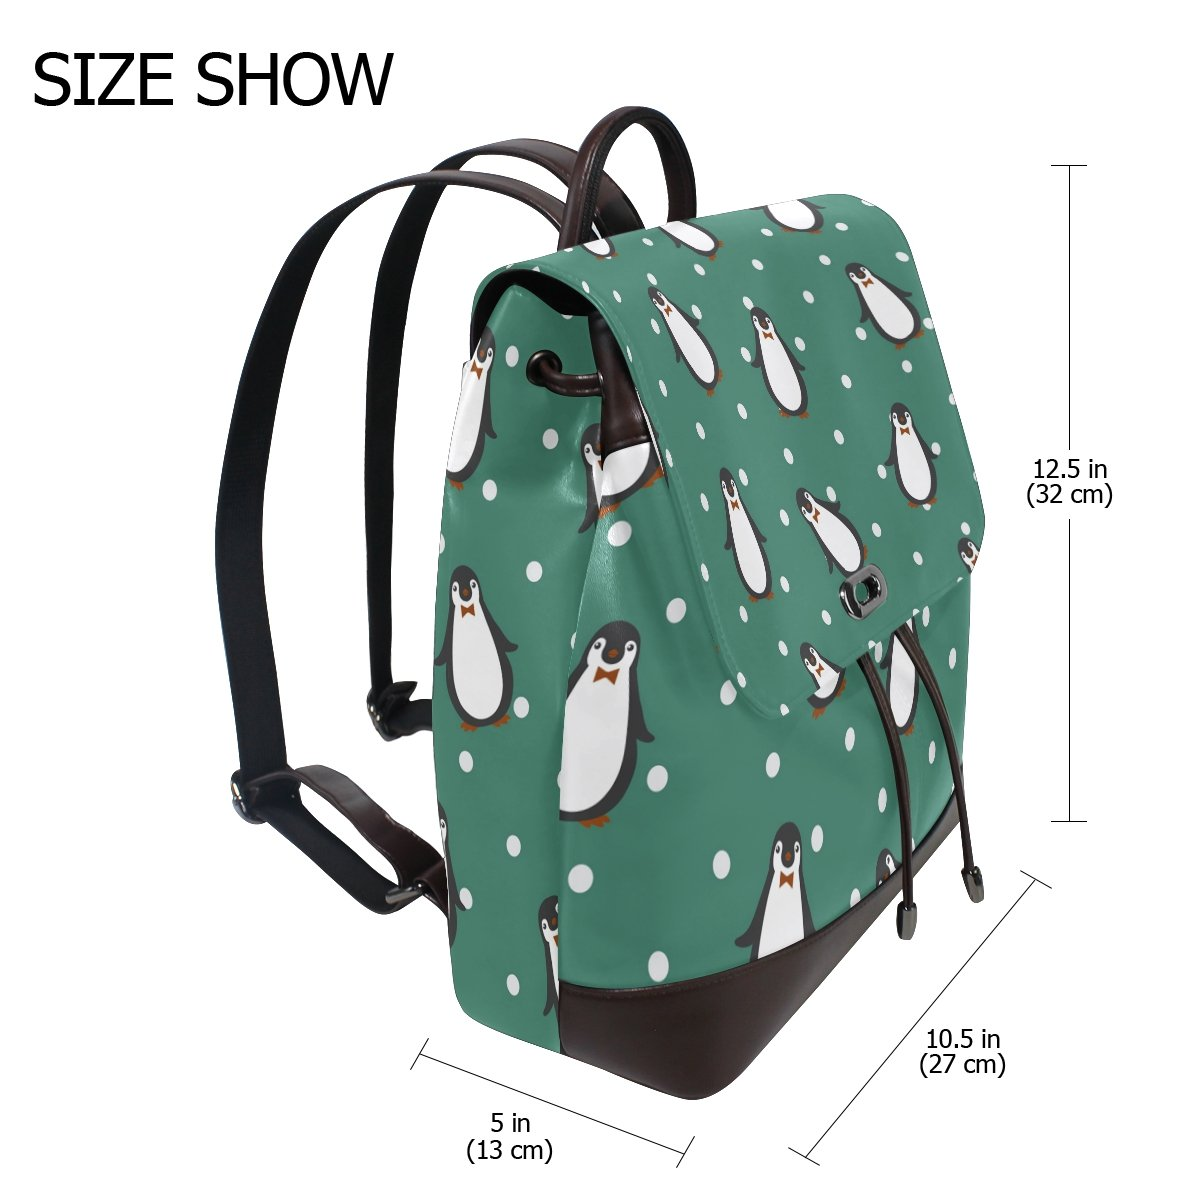 Amazon.com : ALAZA Backpack Penguin Pattern On Green Polka Dot Backpack Shoulder Bag Rucksack PU Leather for Women Girls Ladies : Garden & Outdoor